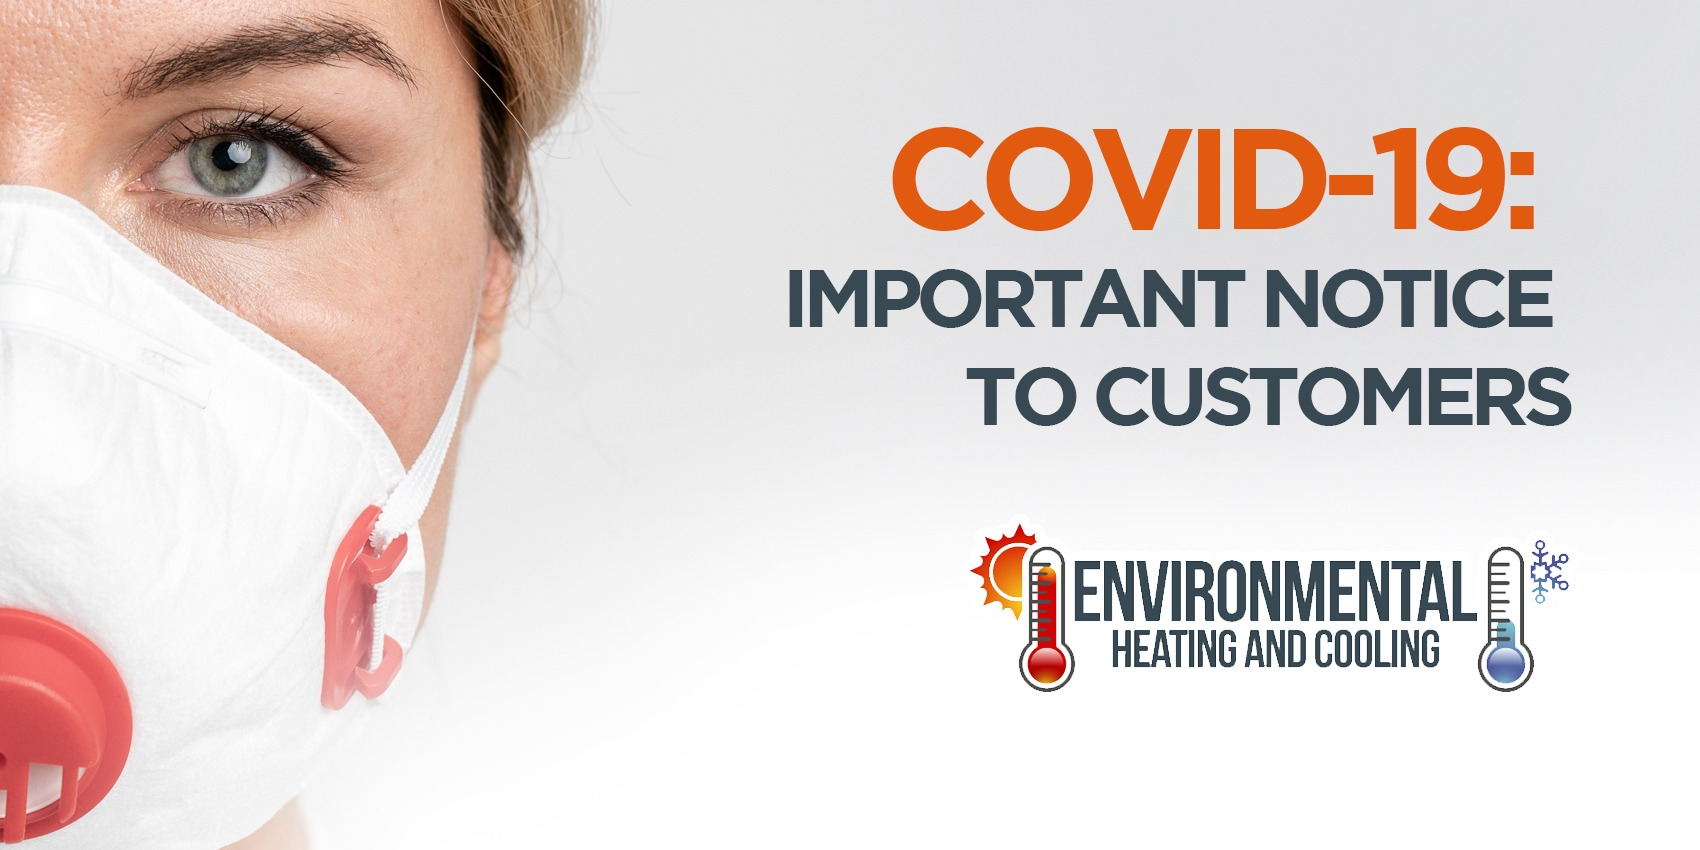 COVID-19 Update from Environmental Heating & Cooling